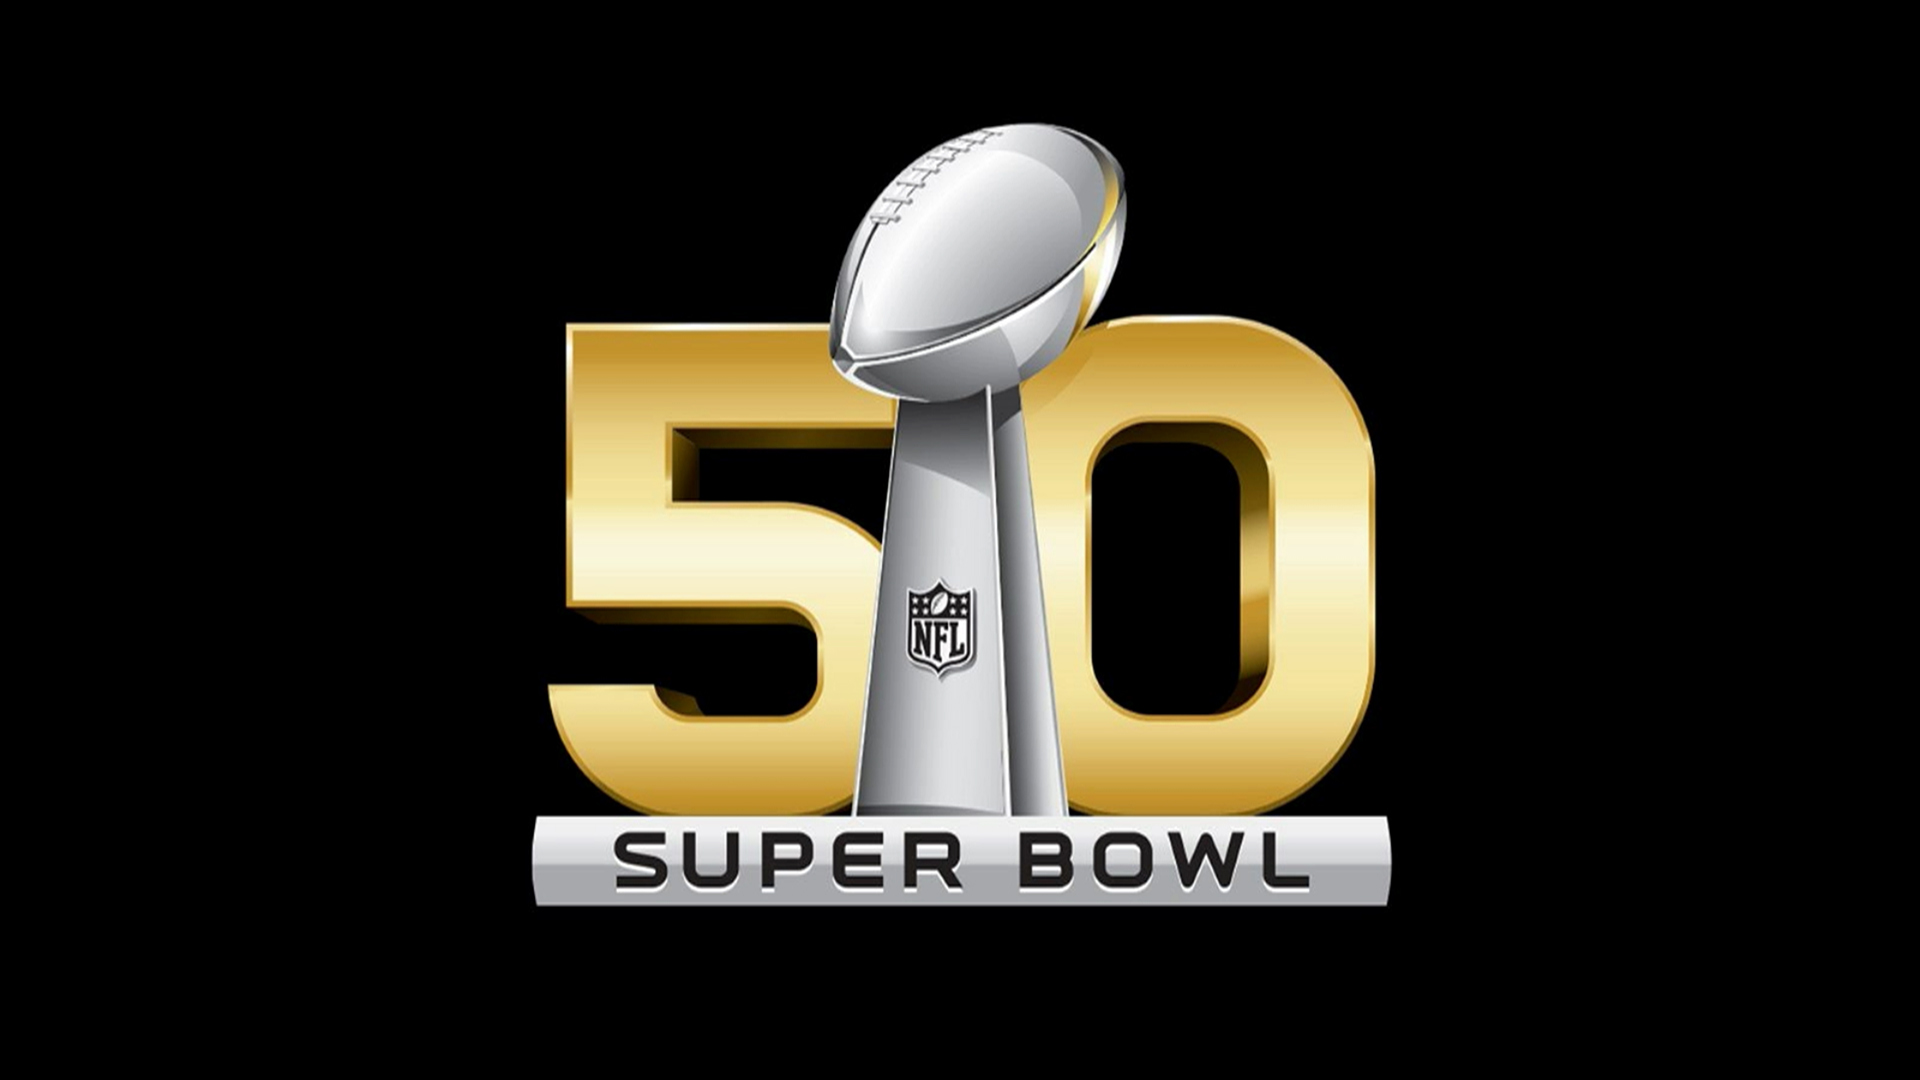 Upgrade nfl ditches roman numerals for 2016 super bowl logo nfl wont use roman numerals for super bowl 50 biocorpaavc